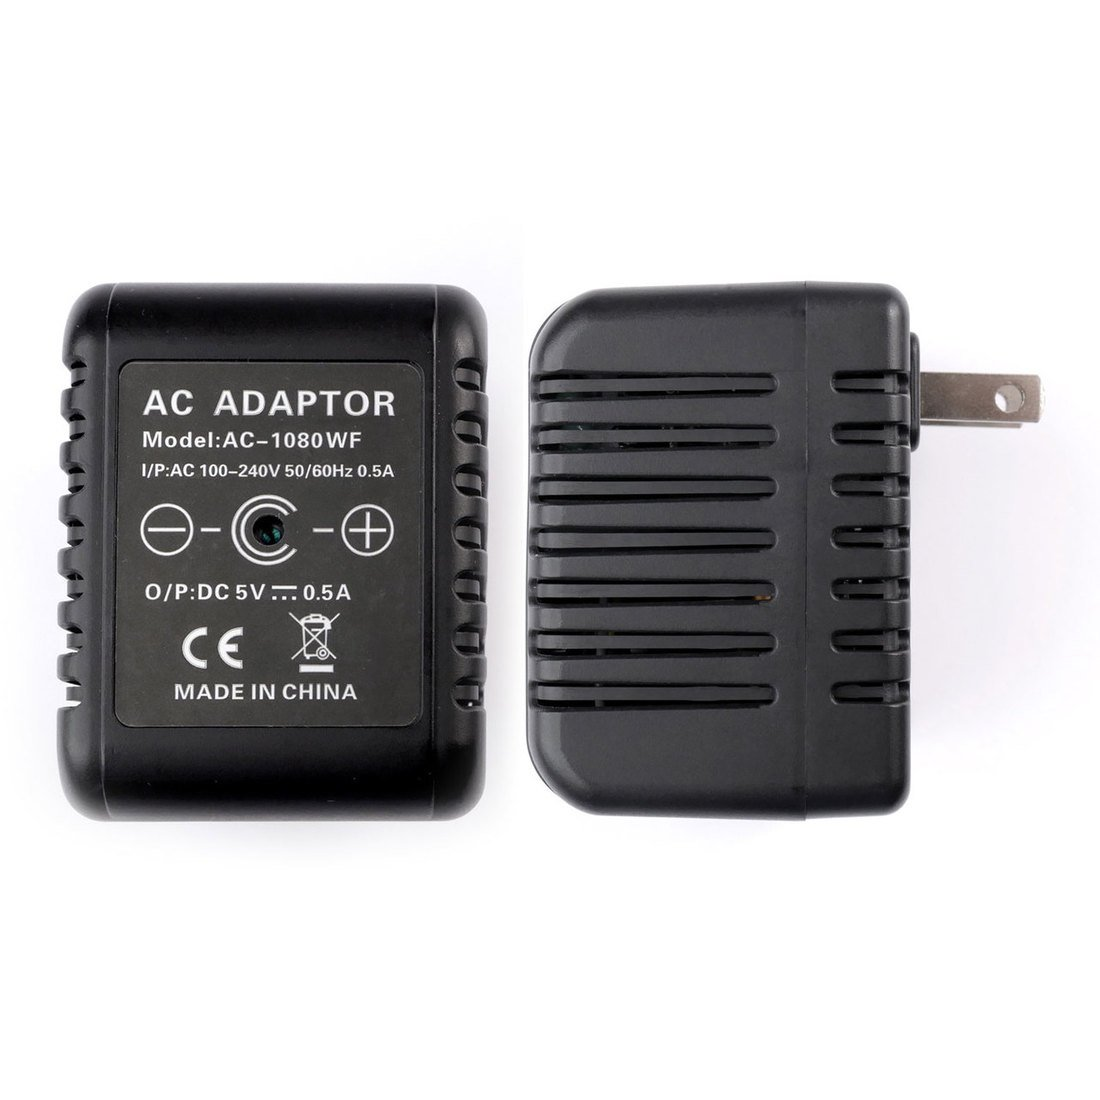 RecorderGear AC50 HD 1080P Hidden Camera AC Adapter / Motion Activated / 60FPS / Remote Control / Loop Recording / Covert Security Spy Nanny Cam